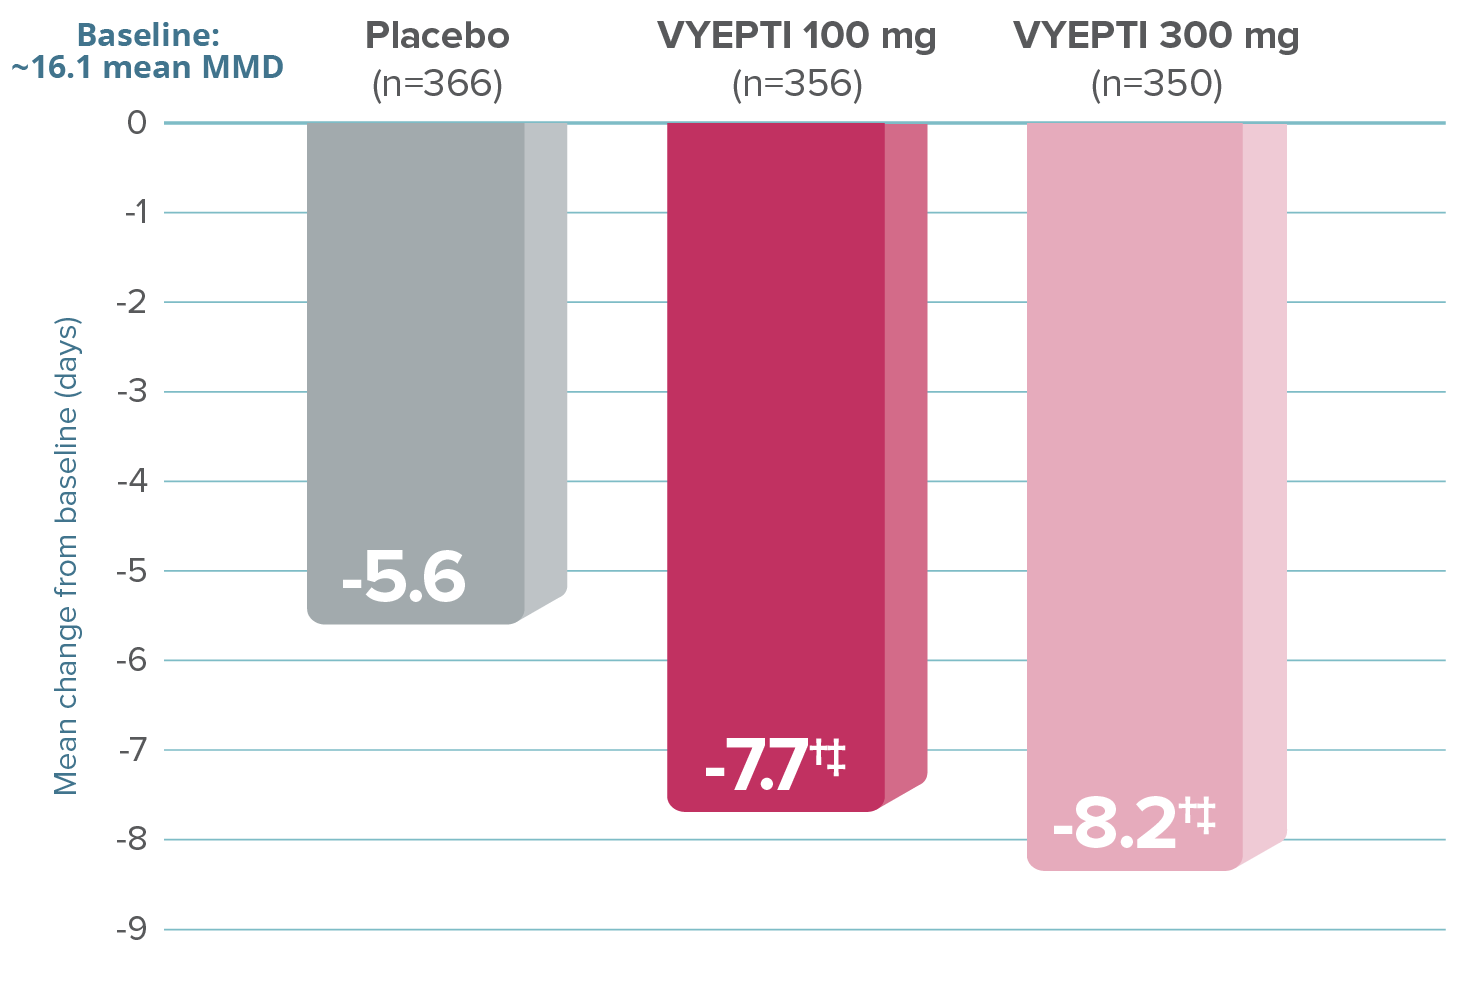 Graph showing that after the first dose, VYEPTI 100 mg and 300 mg dosages reduced the number of mean MMD by 7.7 and 8.2 (Months 1-3), respectively, vs 5.6 with placebo (baseline ~16.1 mean MMD; p<0.001 vs placebo)